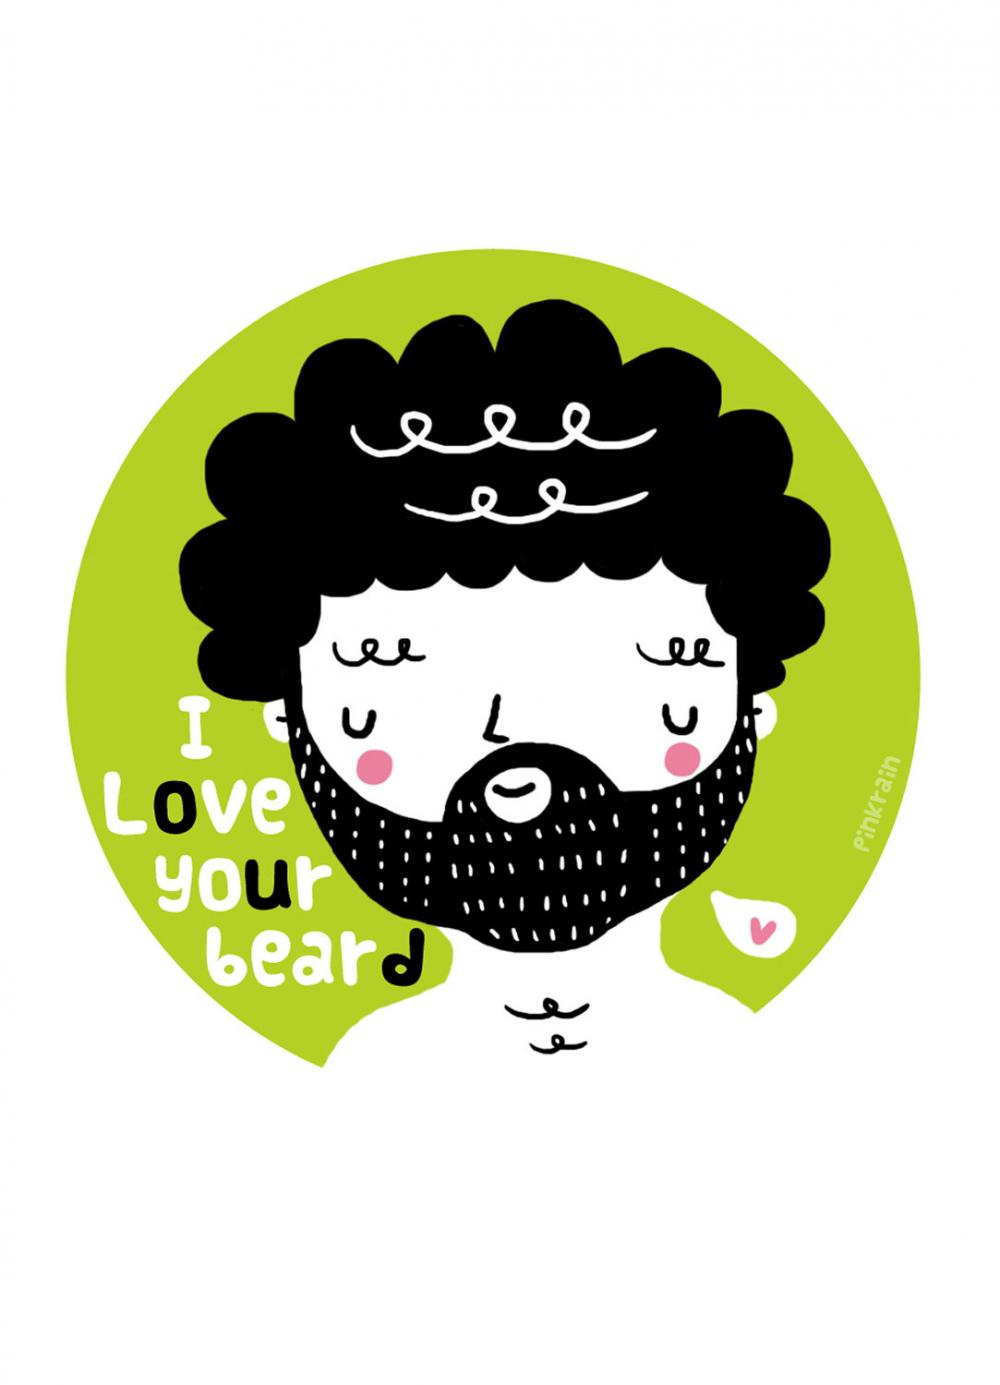 5&quot;x7&quot; print I Love Your Beard illustration wall art